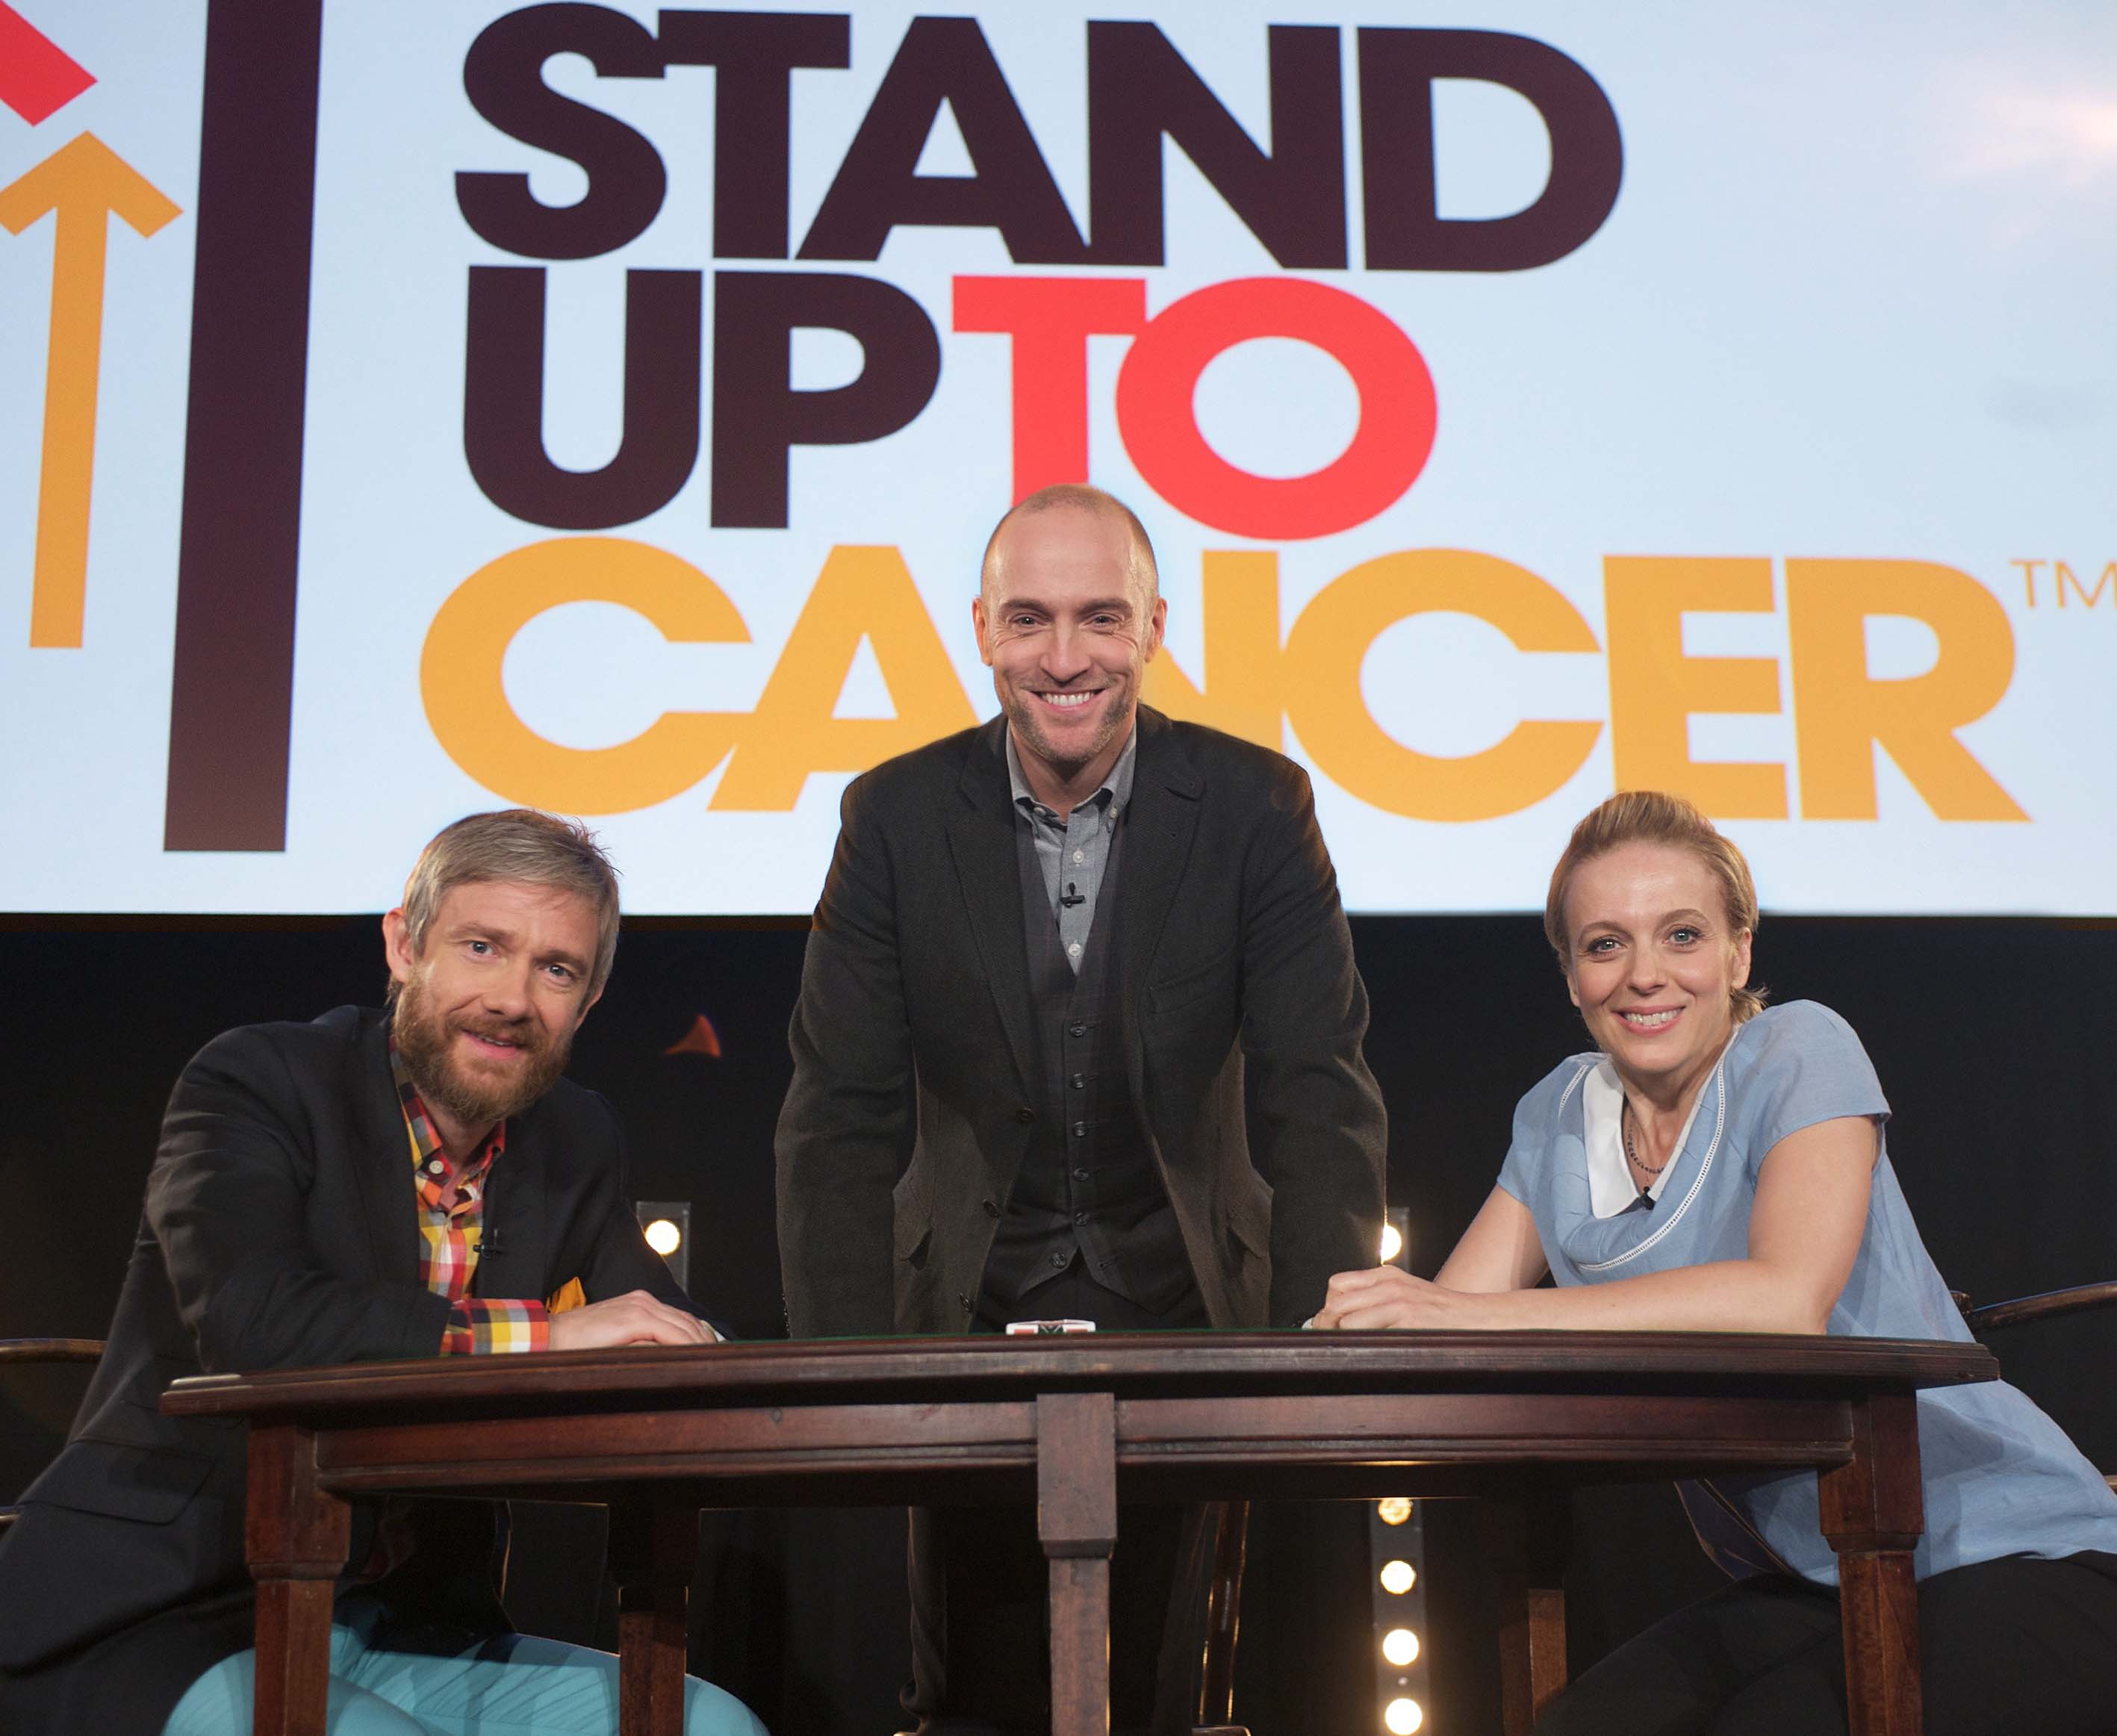 Stand Up To Cancer: Derren Brown freaks out Martin Freeman with mind reading trick